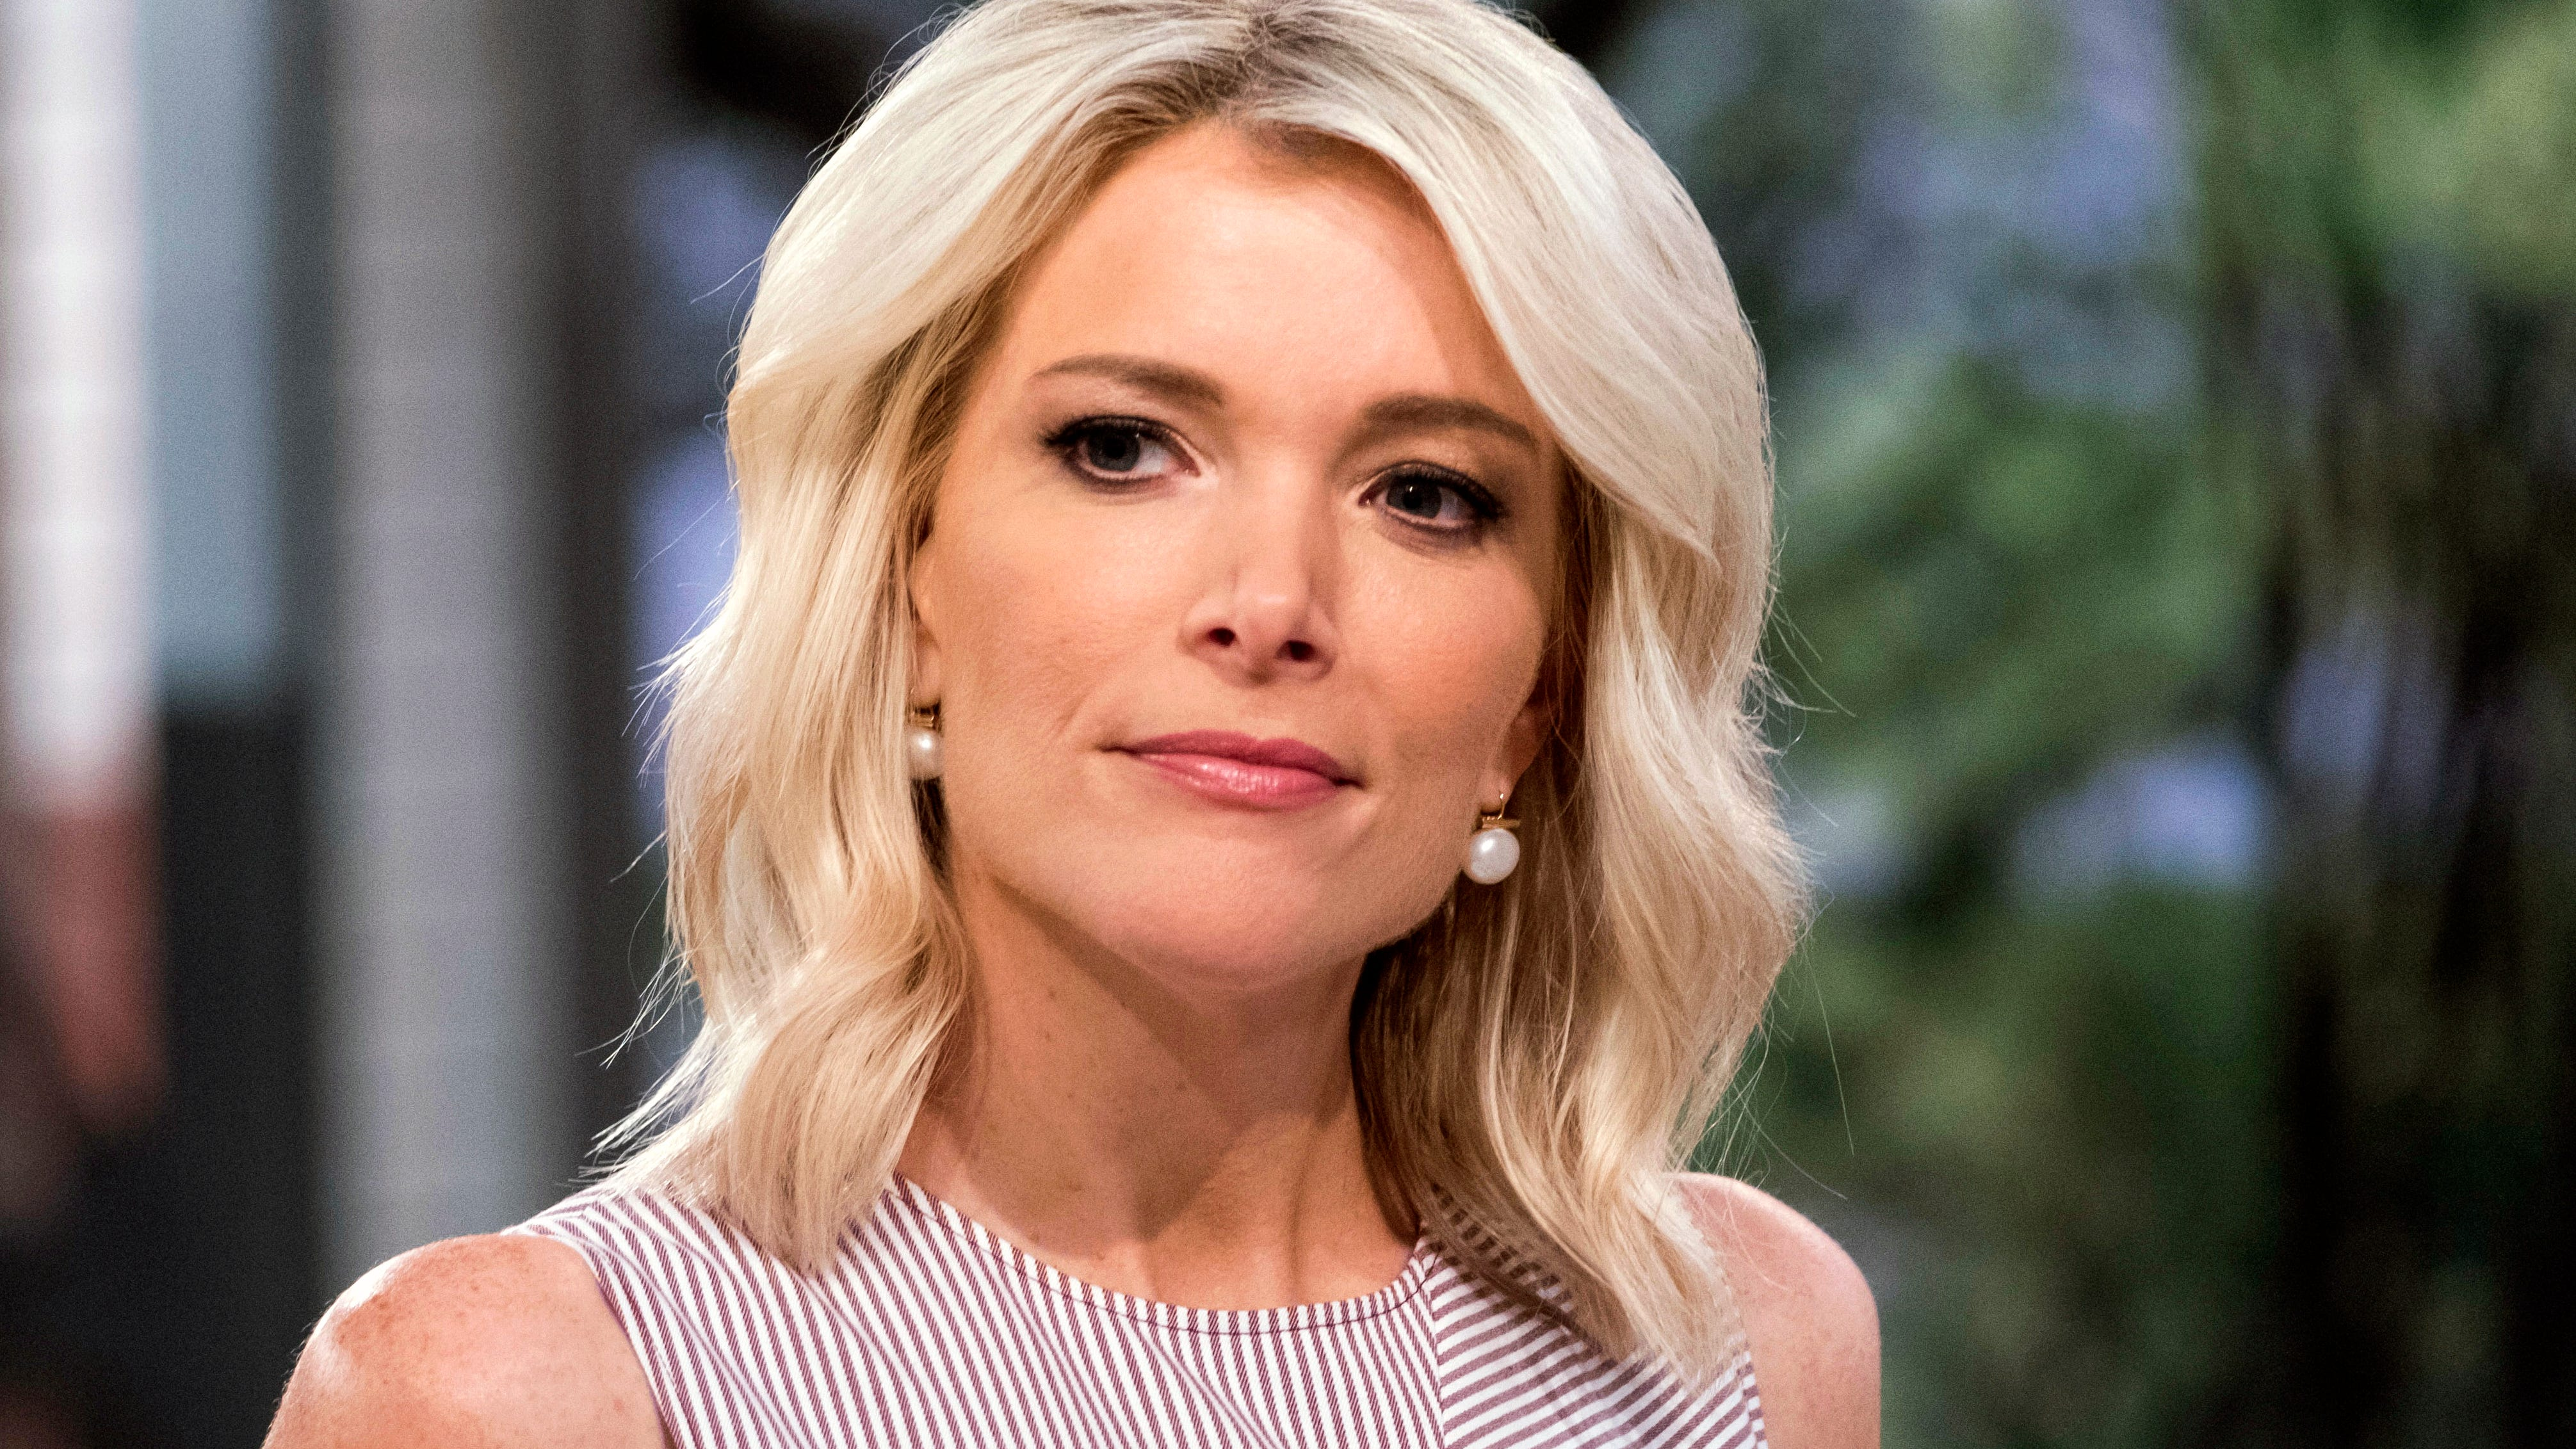 """Megyn Kelly talks family during her first interview since her depature from NBC's  """"Megyn Kelly Today"""" following her comments on dressing up in blackface for a Halloween costume."""